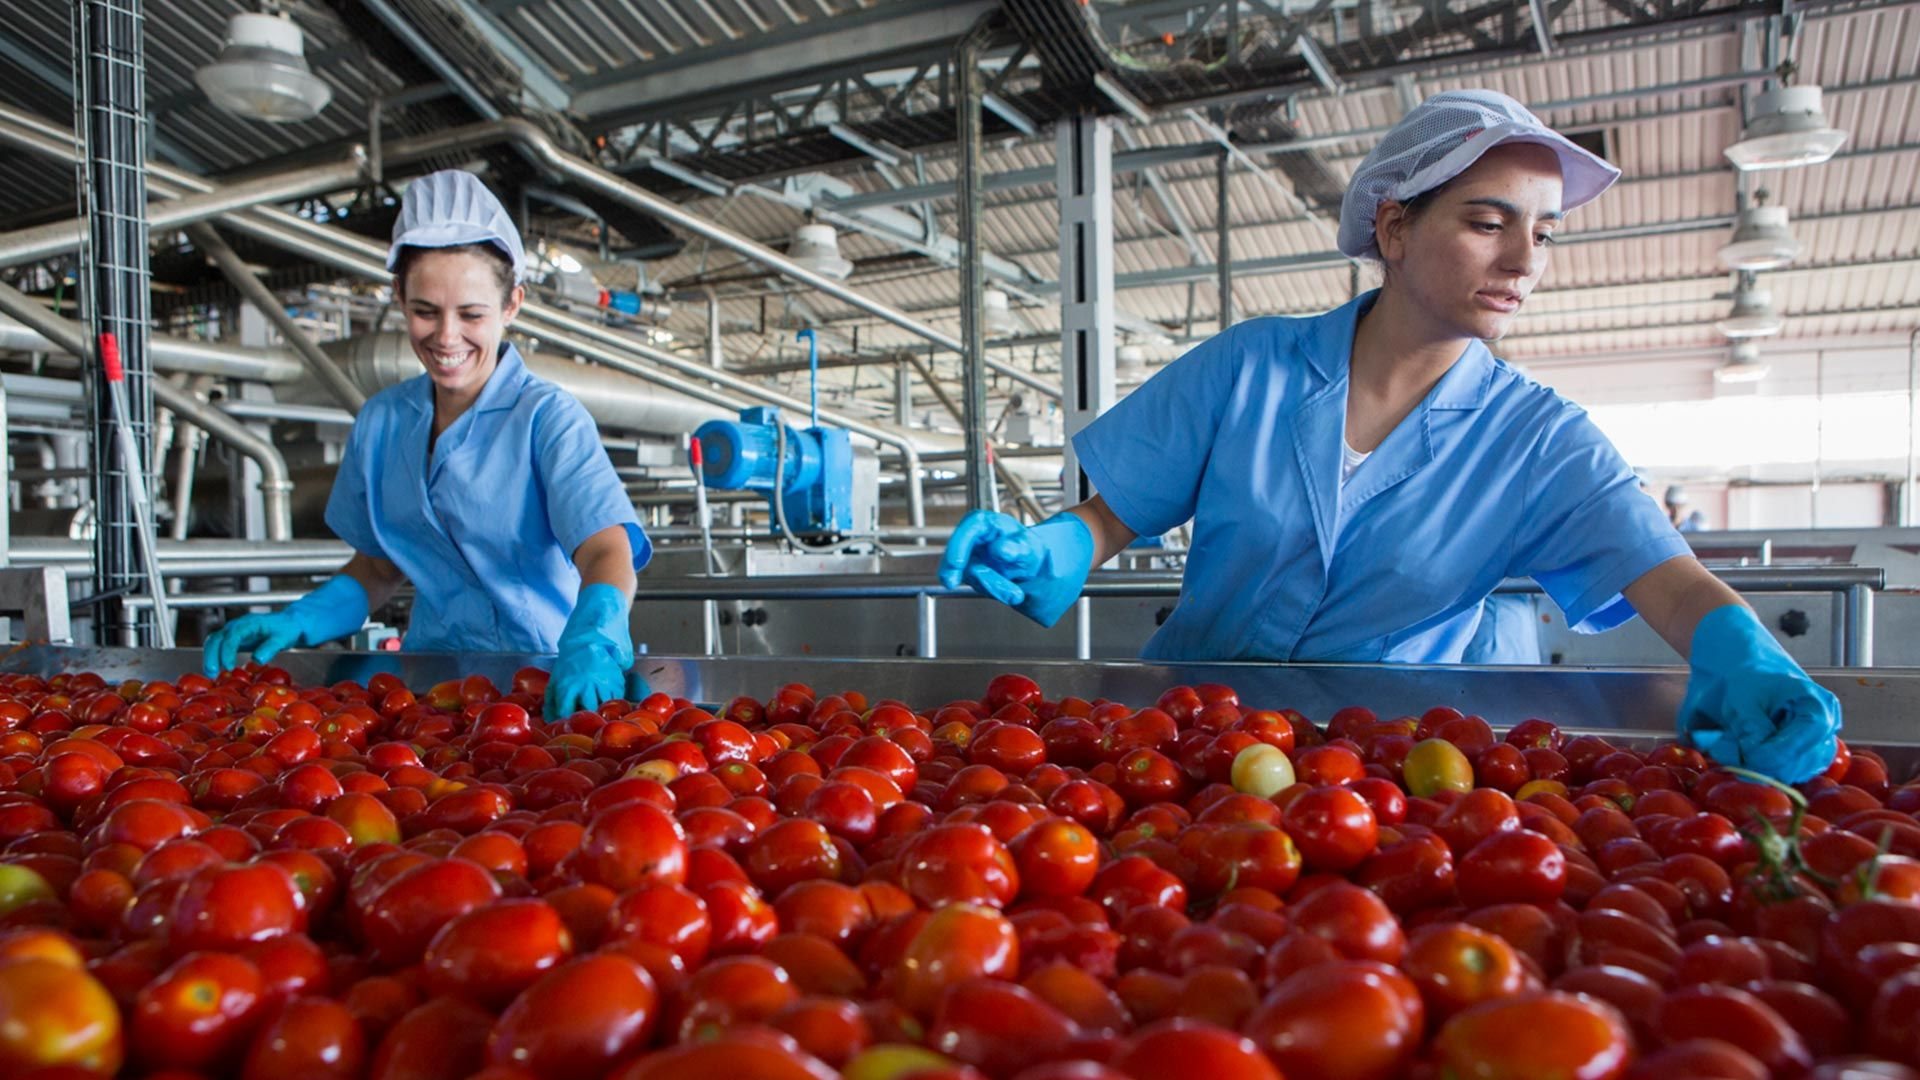 two ladies wearing blue gloves and unilever uniform sorting through a massive vat of tomatoes in a warehouse